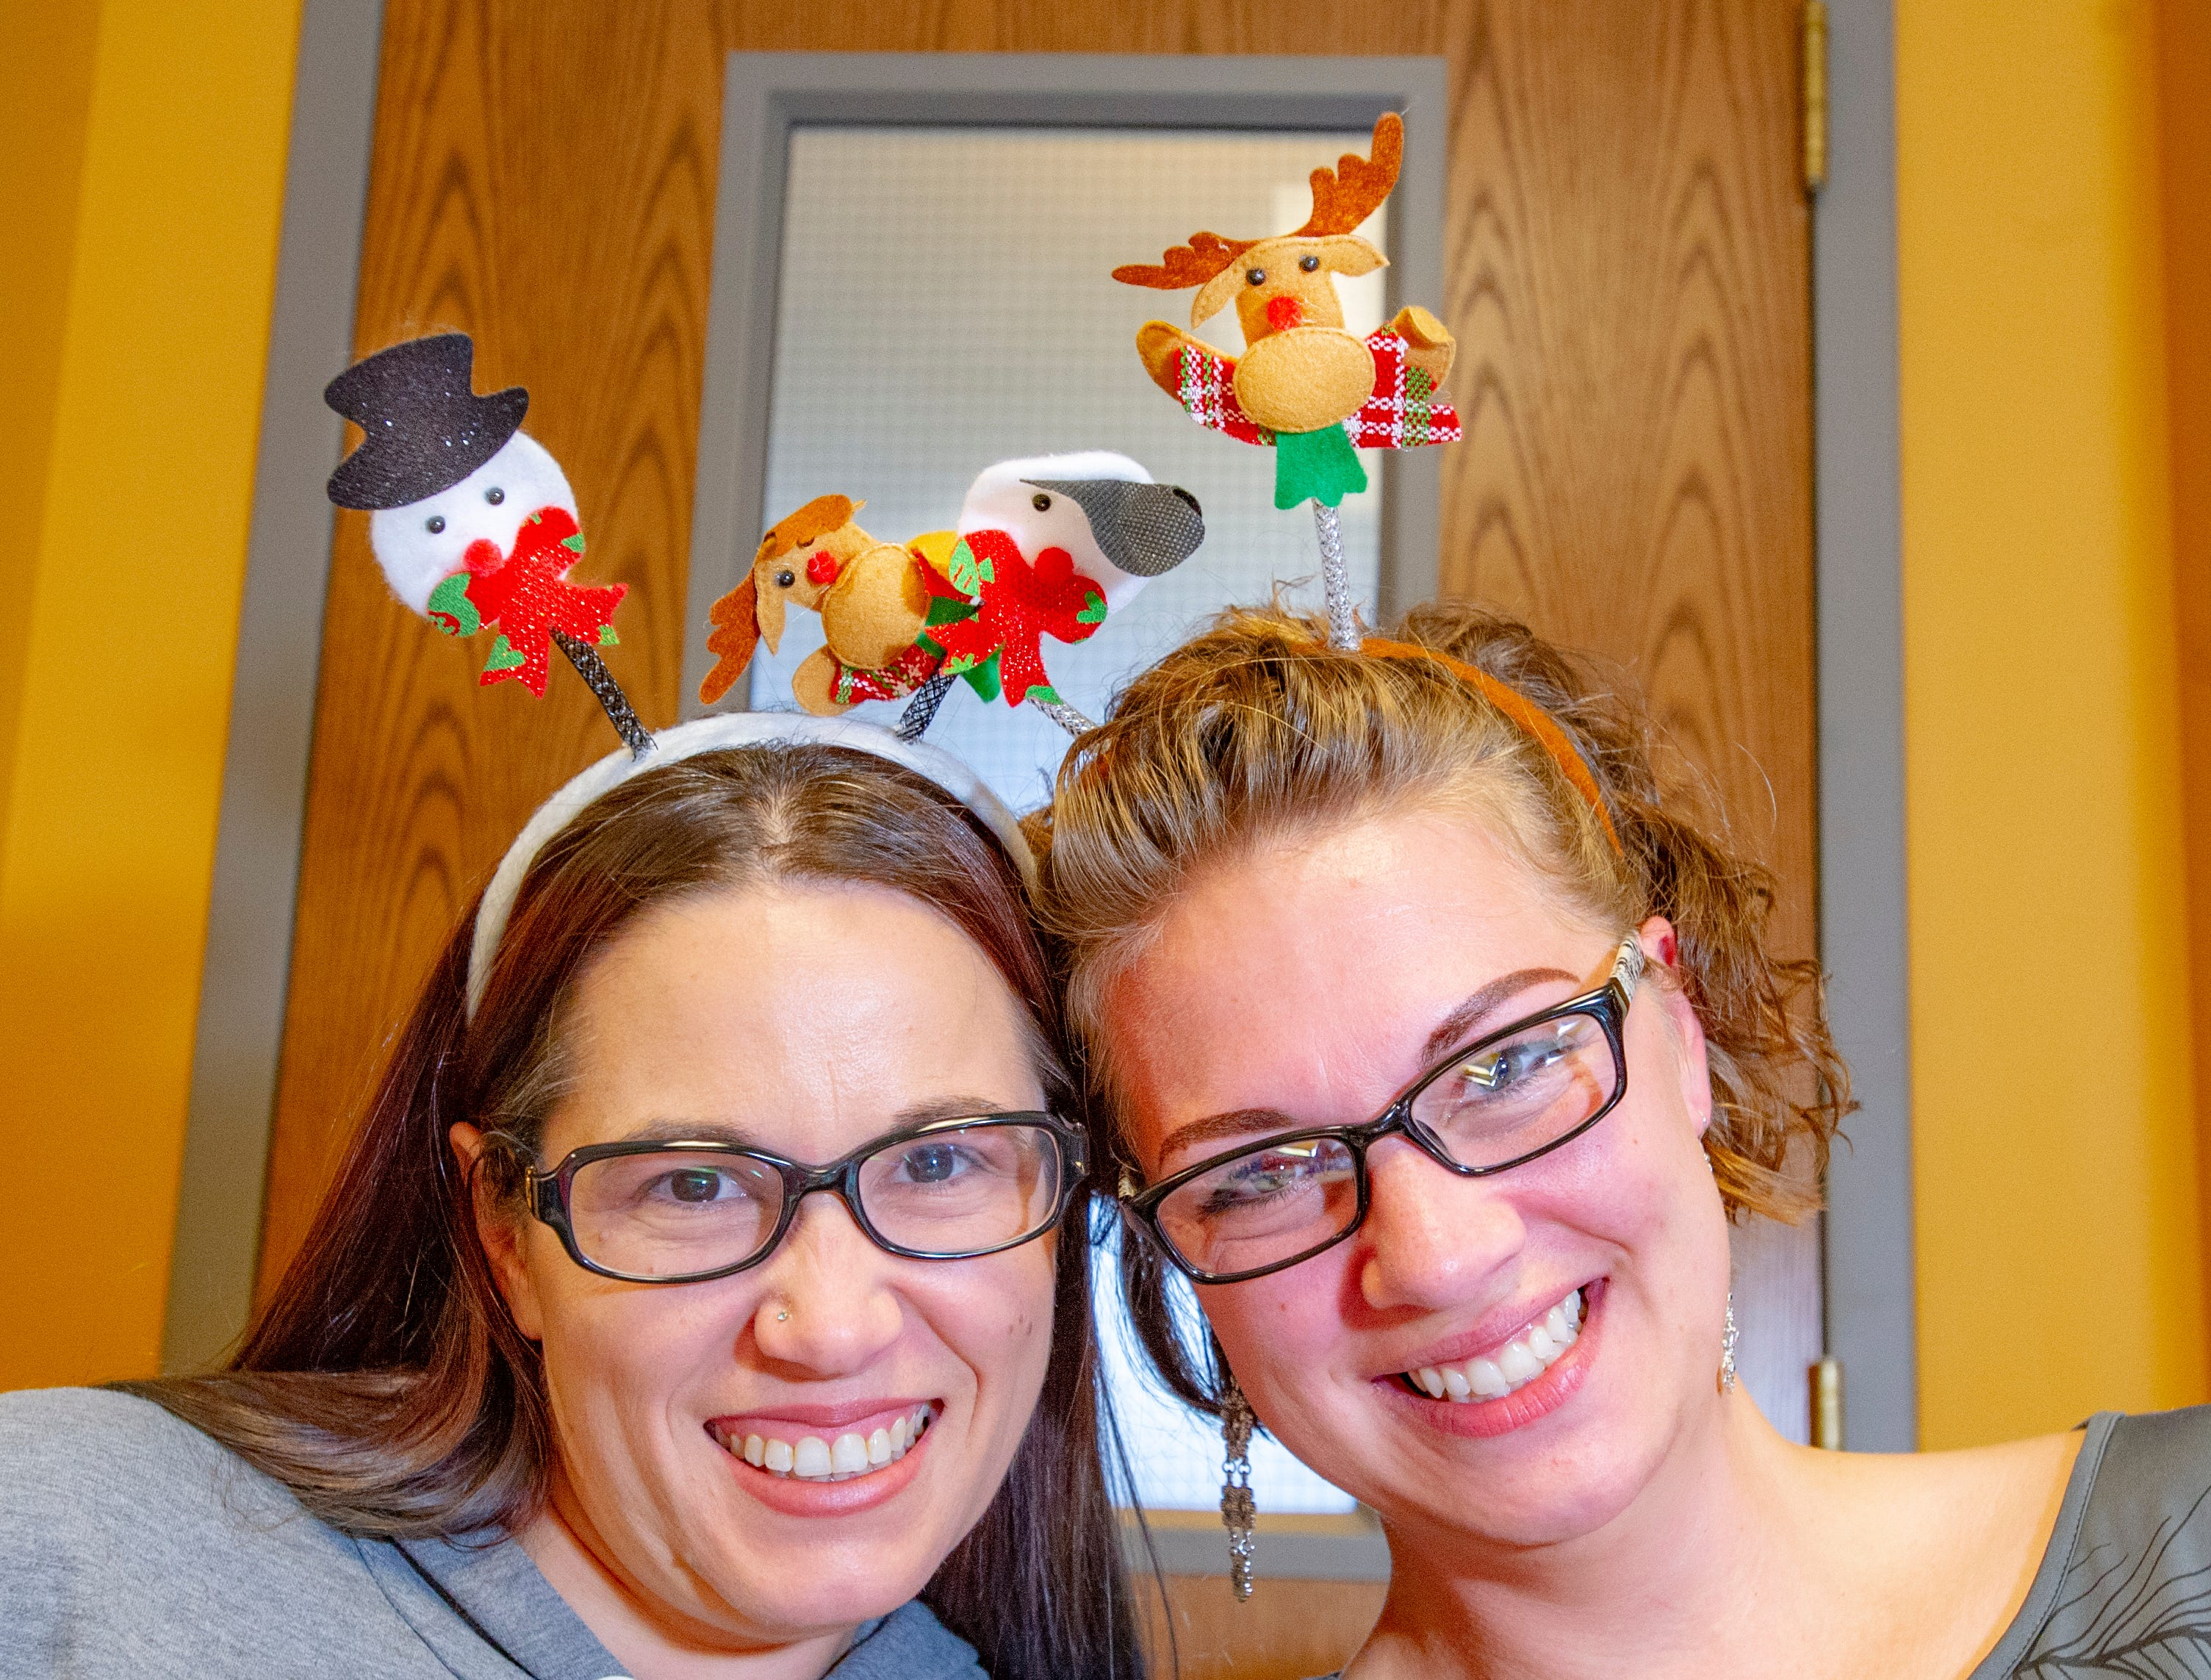 Sunshine Kluver, left, and Rachel Wilkening, of Norwalk, had fun at the Arts and Crafts Vendor Show held at the Warren County Administration Building Nov. 24, 2018. They had fun  representing their brand Level Health Products and wearing their Christmas headbands.